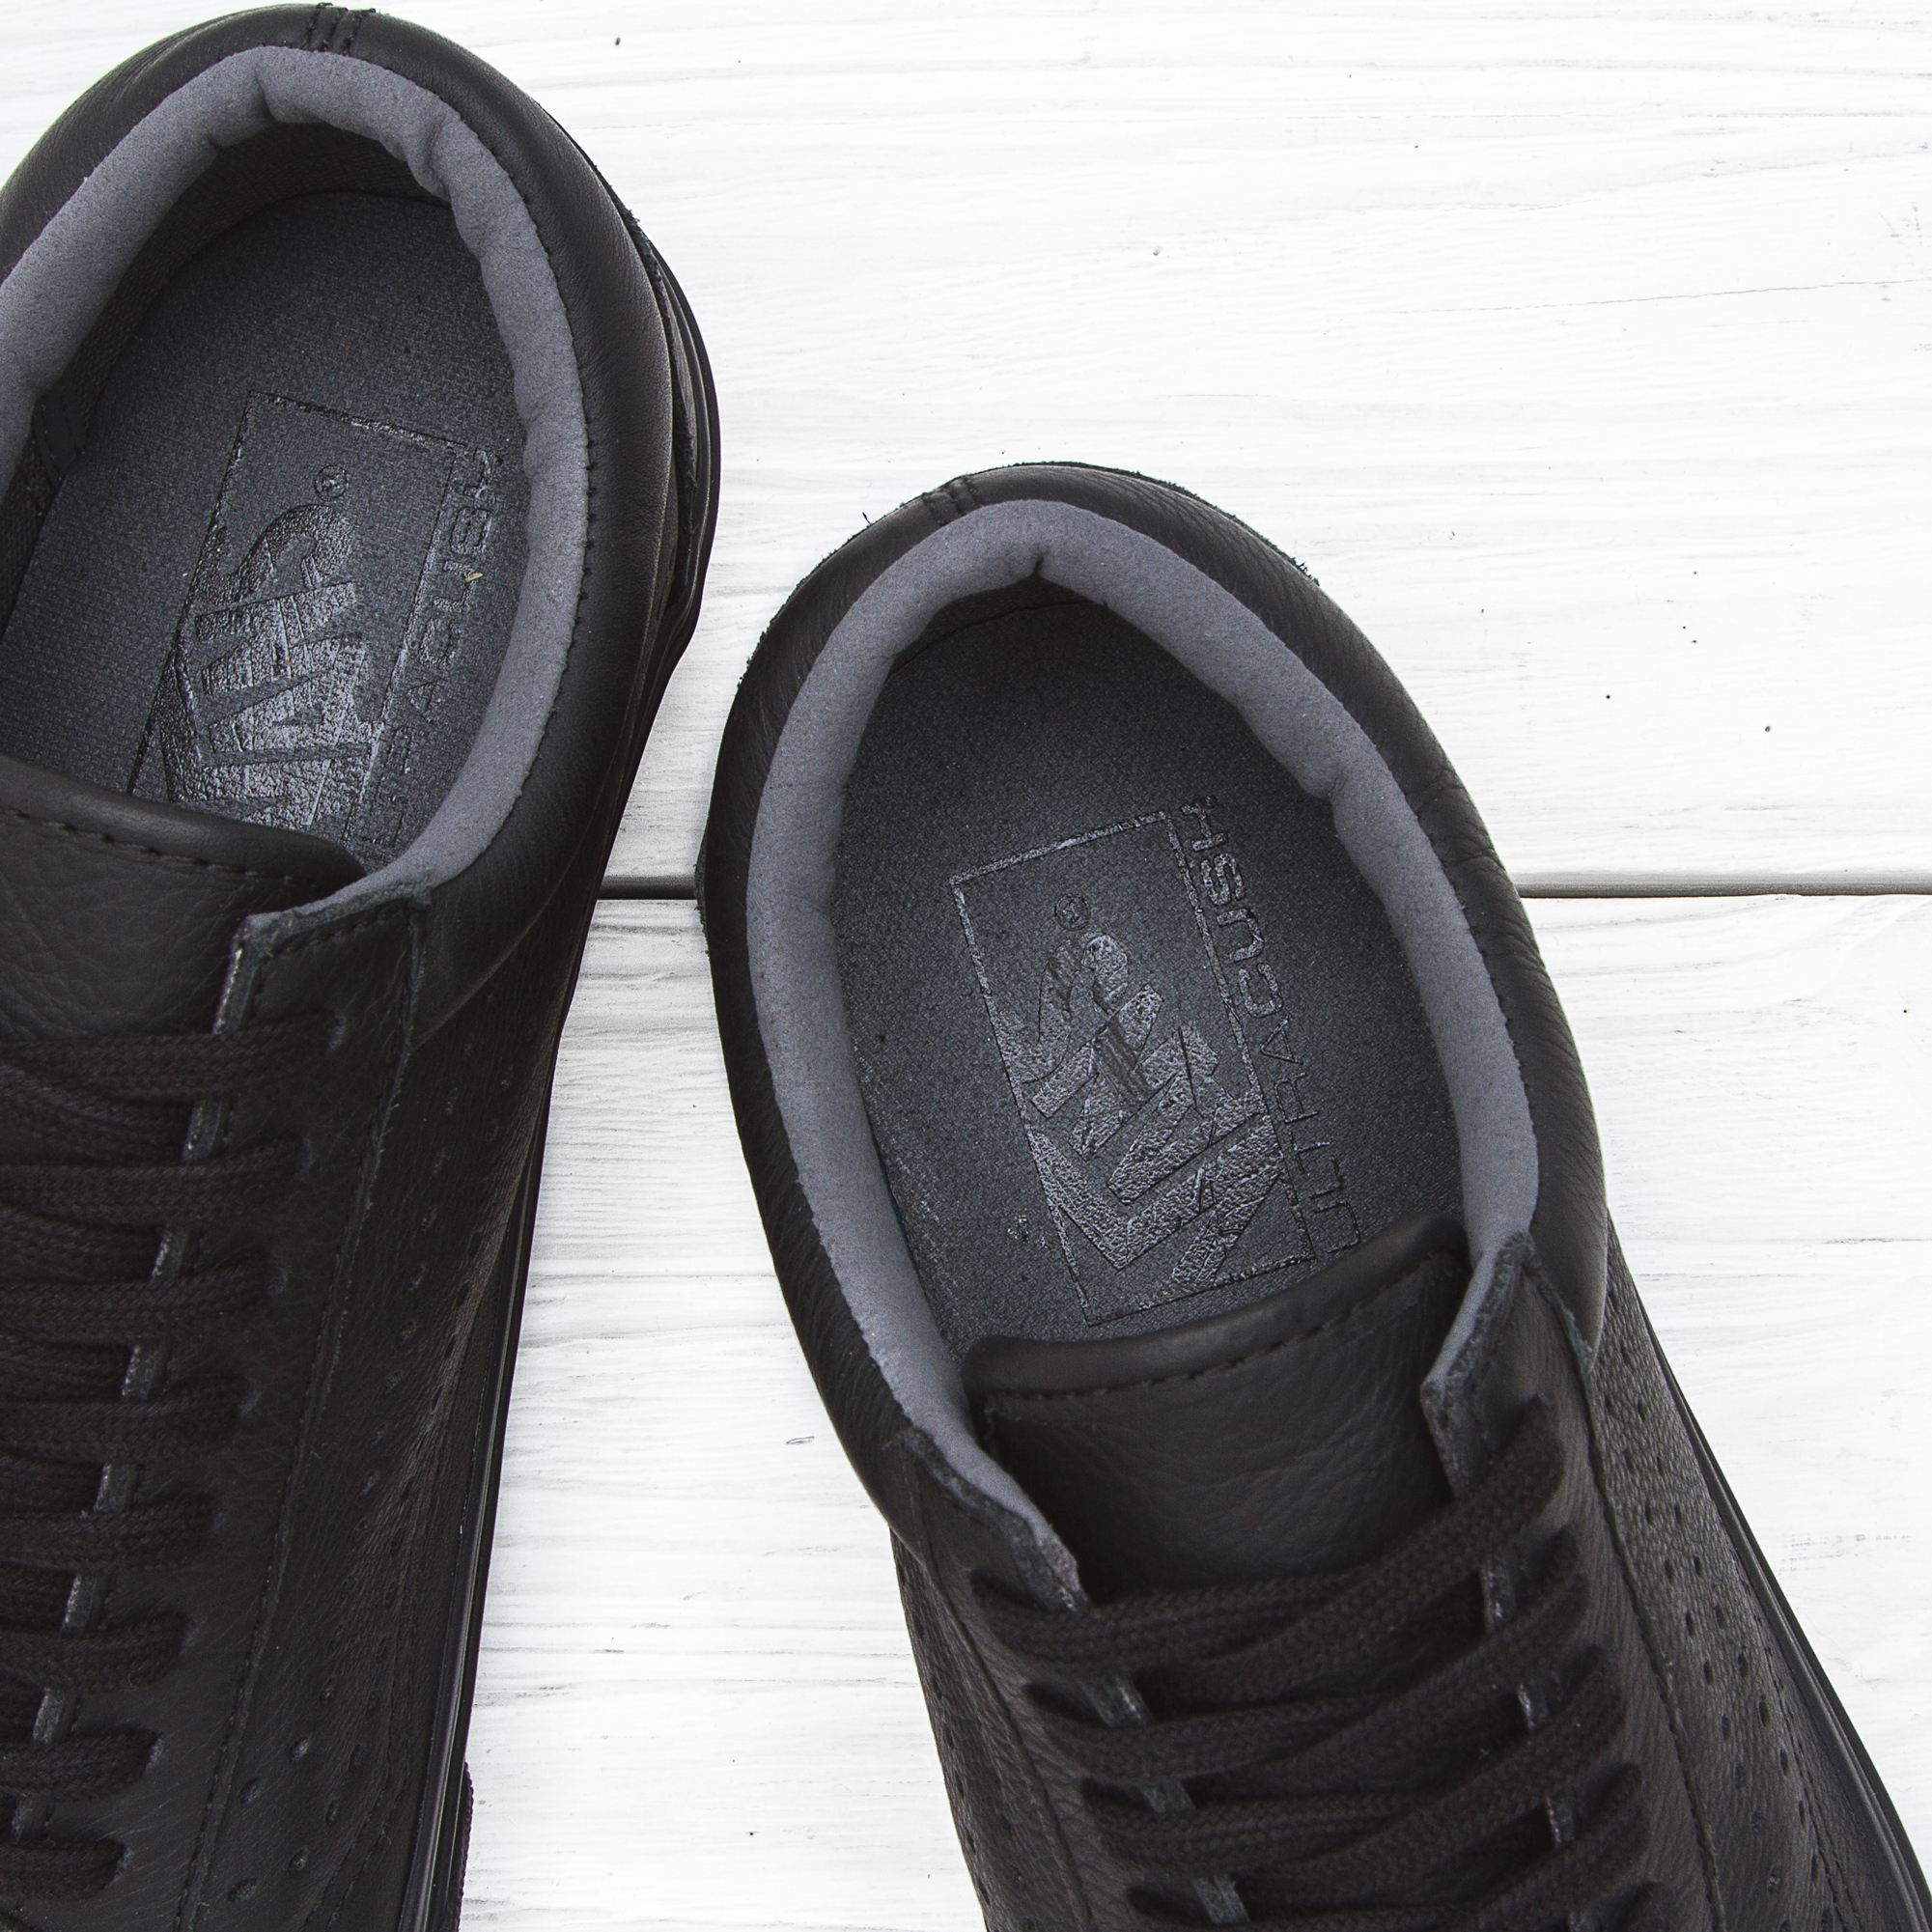 19f3a3d6d48e20b  Кеды Vans OLD SKOOL REISSUE Black Leather цена 060c786d1e275